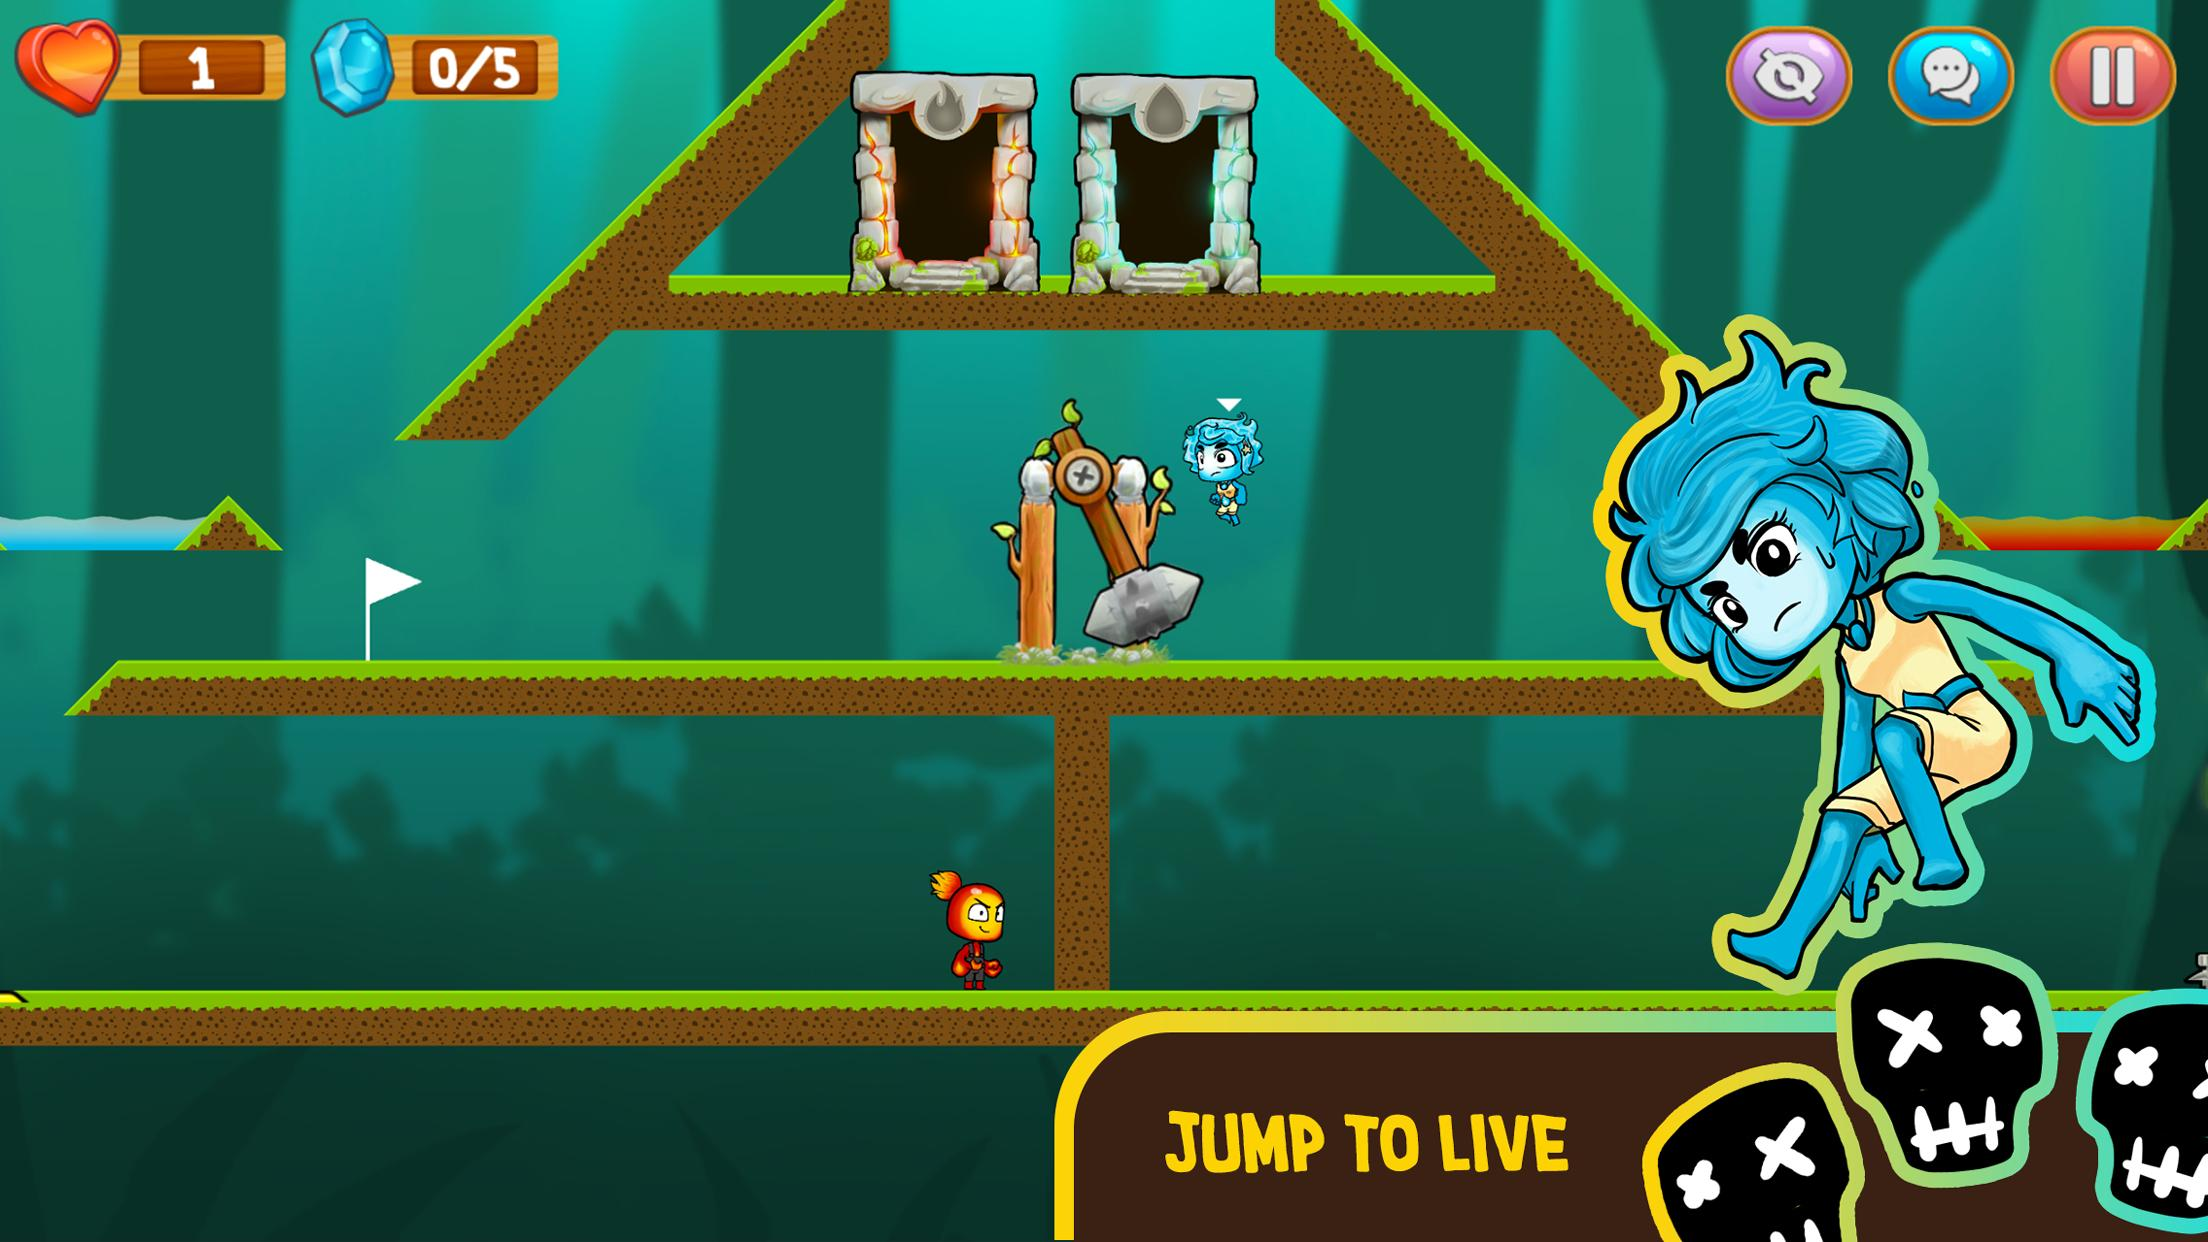 Fire and Water: Online co-op game for boy and girl 2.3.0 Screenshot 2